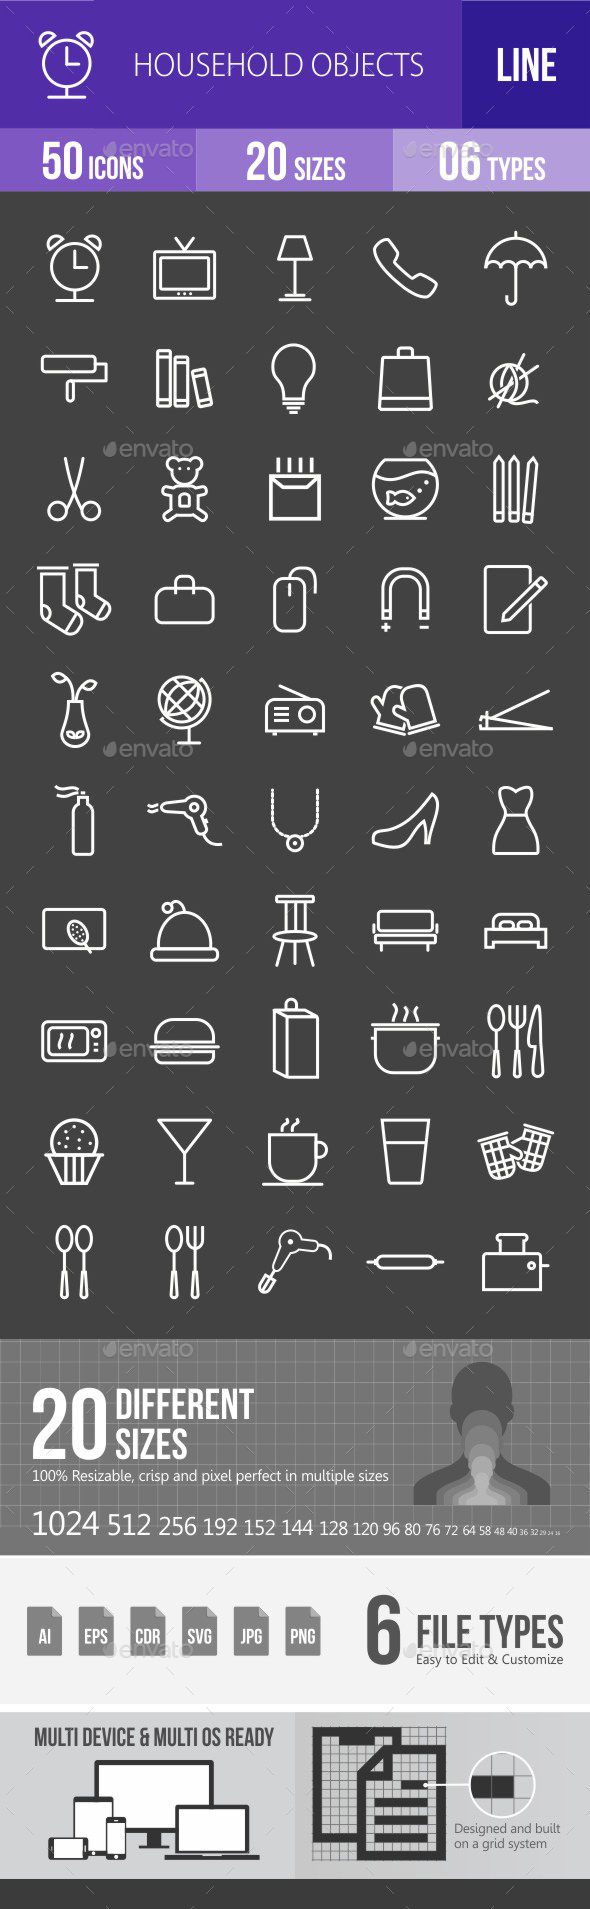 Household Objects Line Inverted Icons - Icons